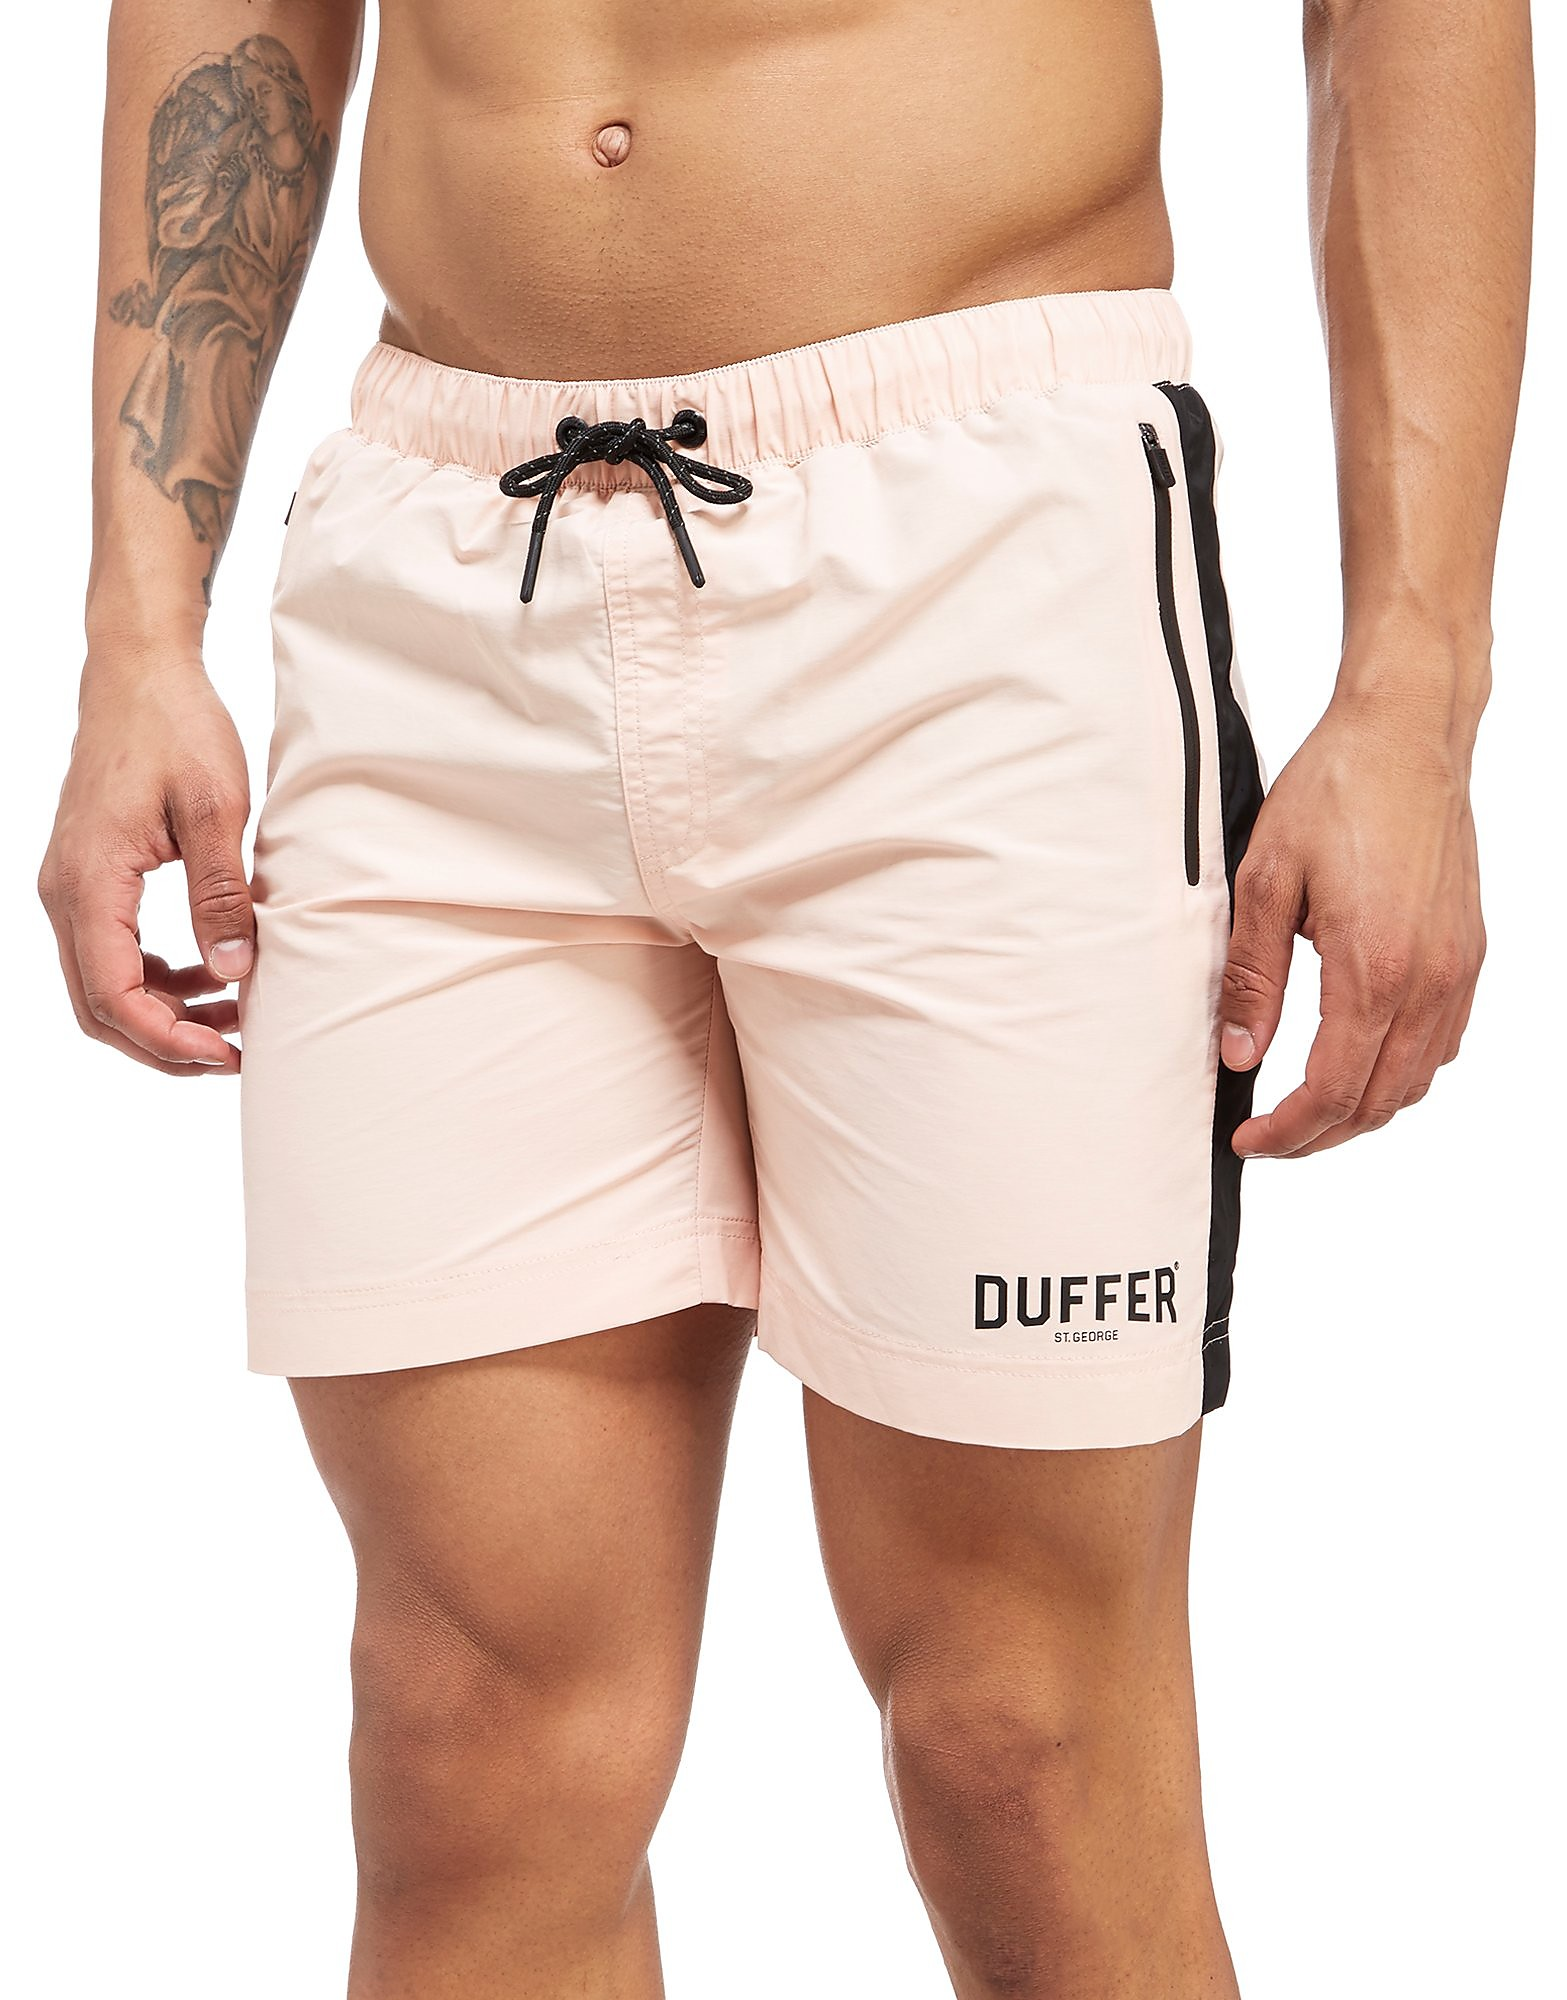 Duffer of St George Barter Shorts